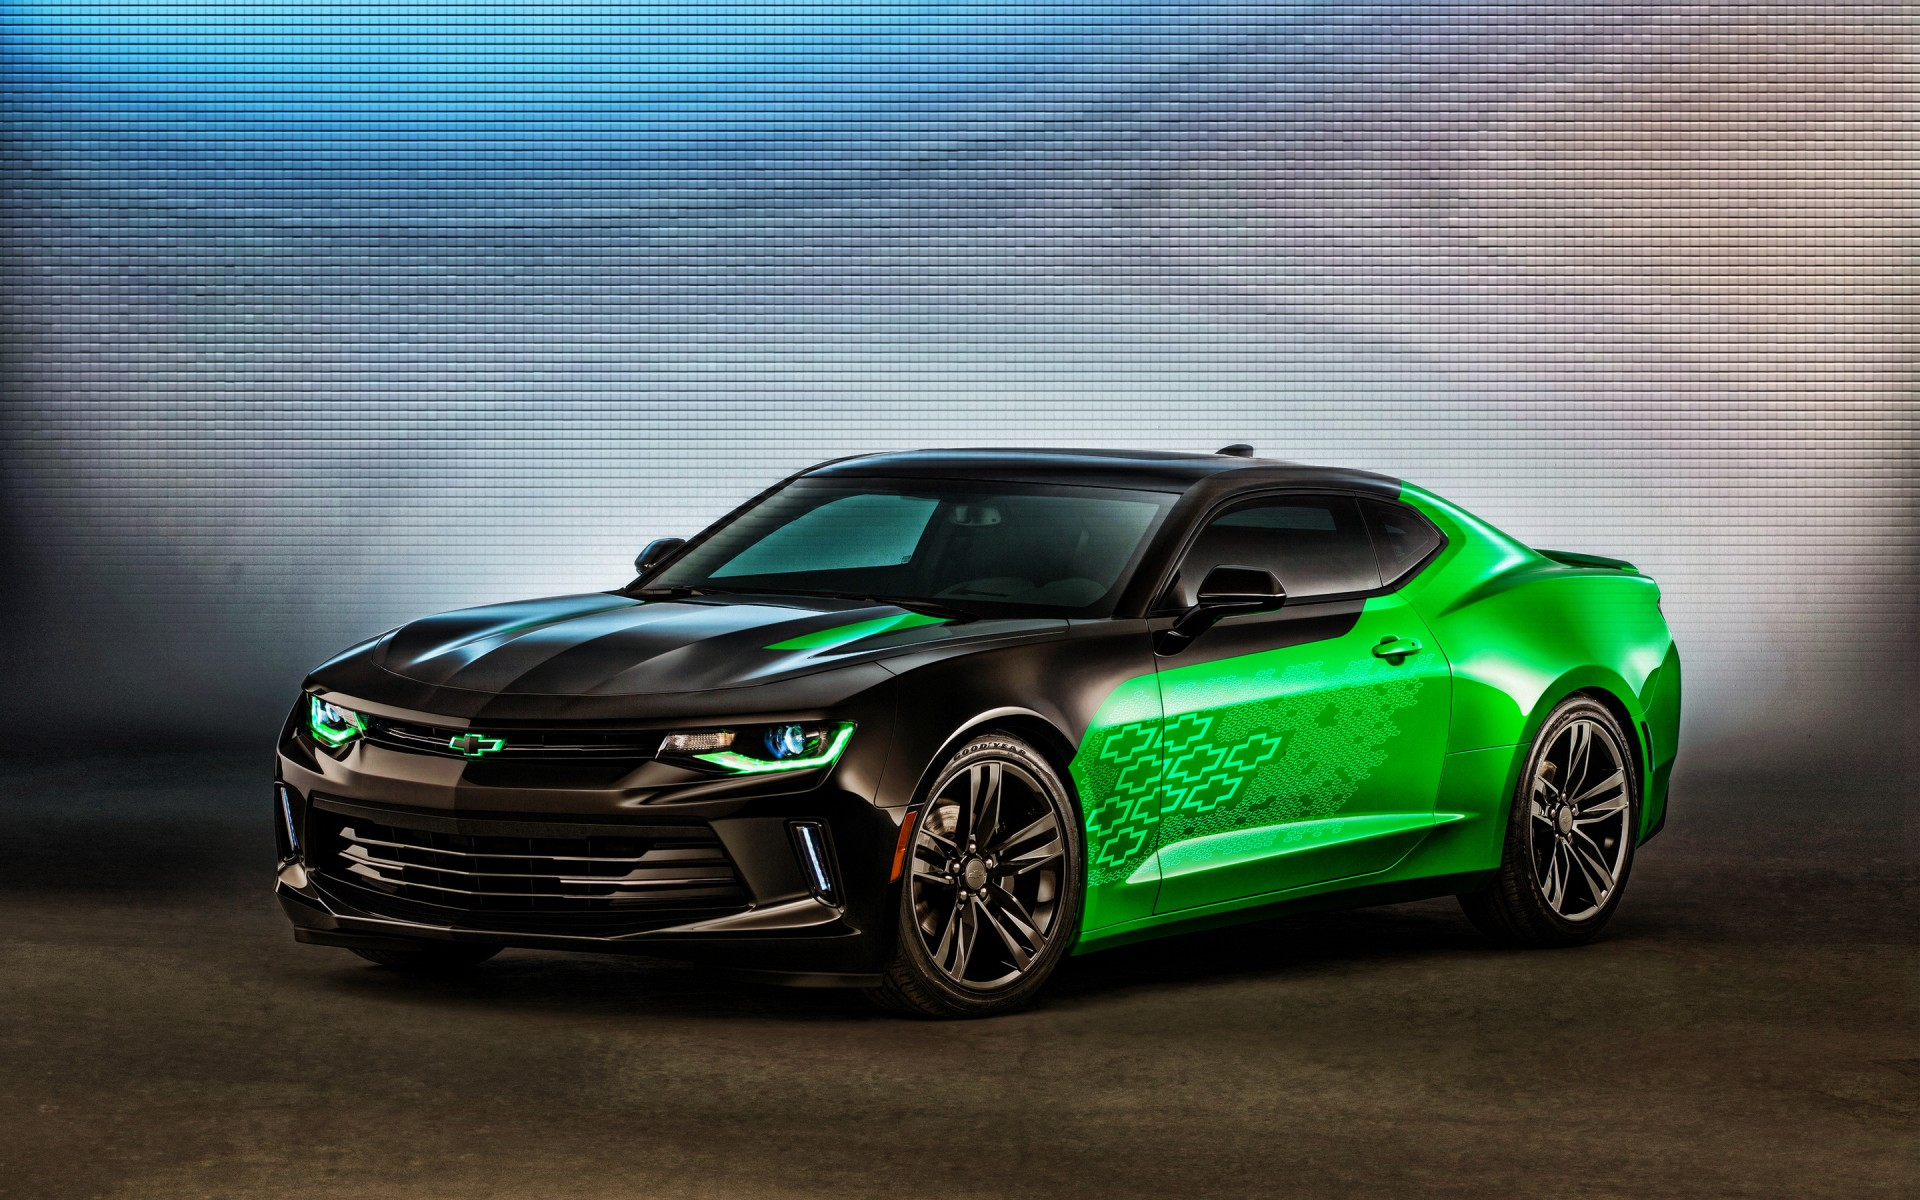 2016 chevy camaro wallpaper hd car wallpapers id 5930 - Cars hd wallpapers for laptop ...